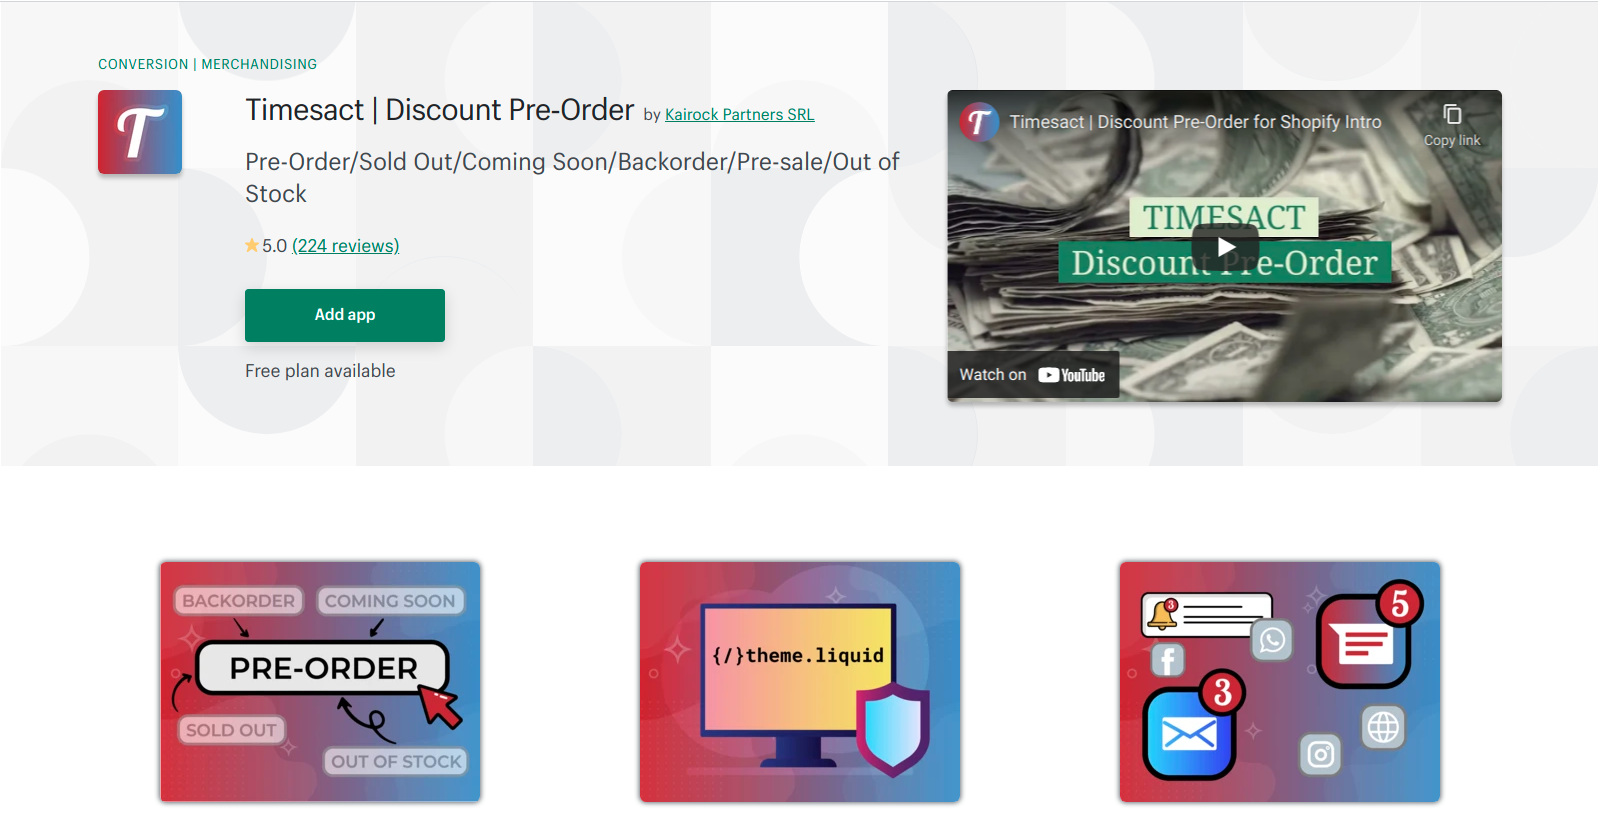 timesact-discount-pre-order-app